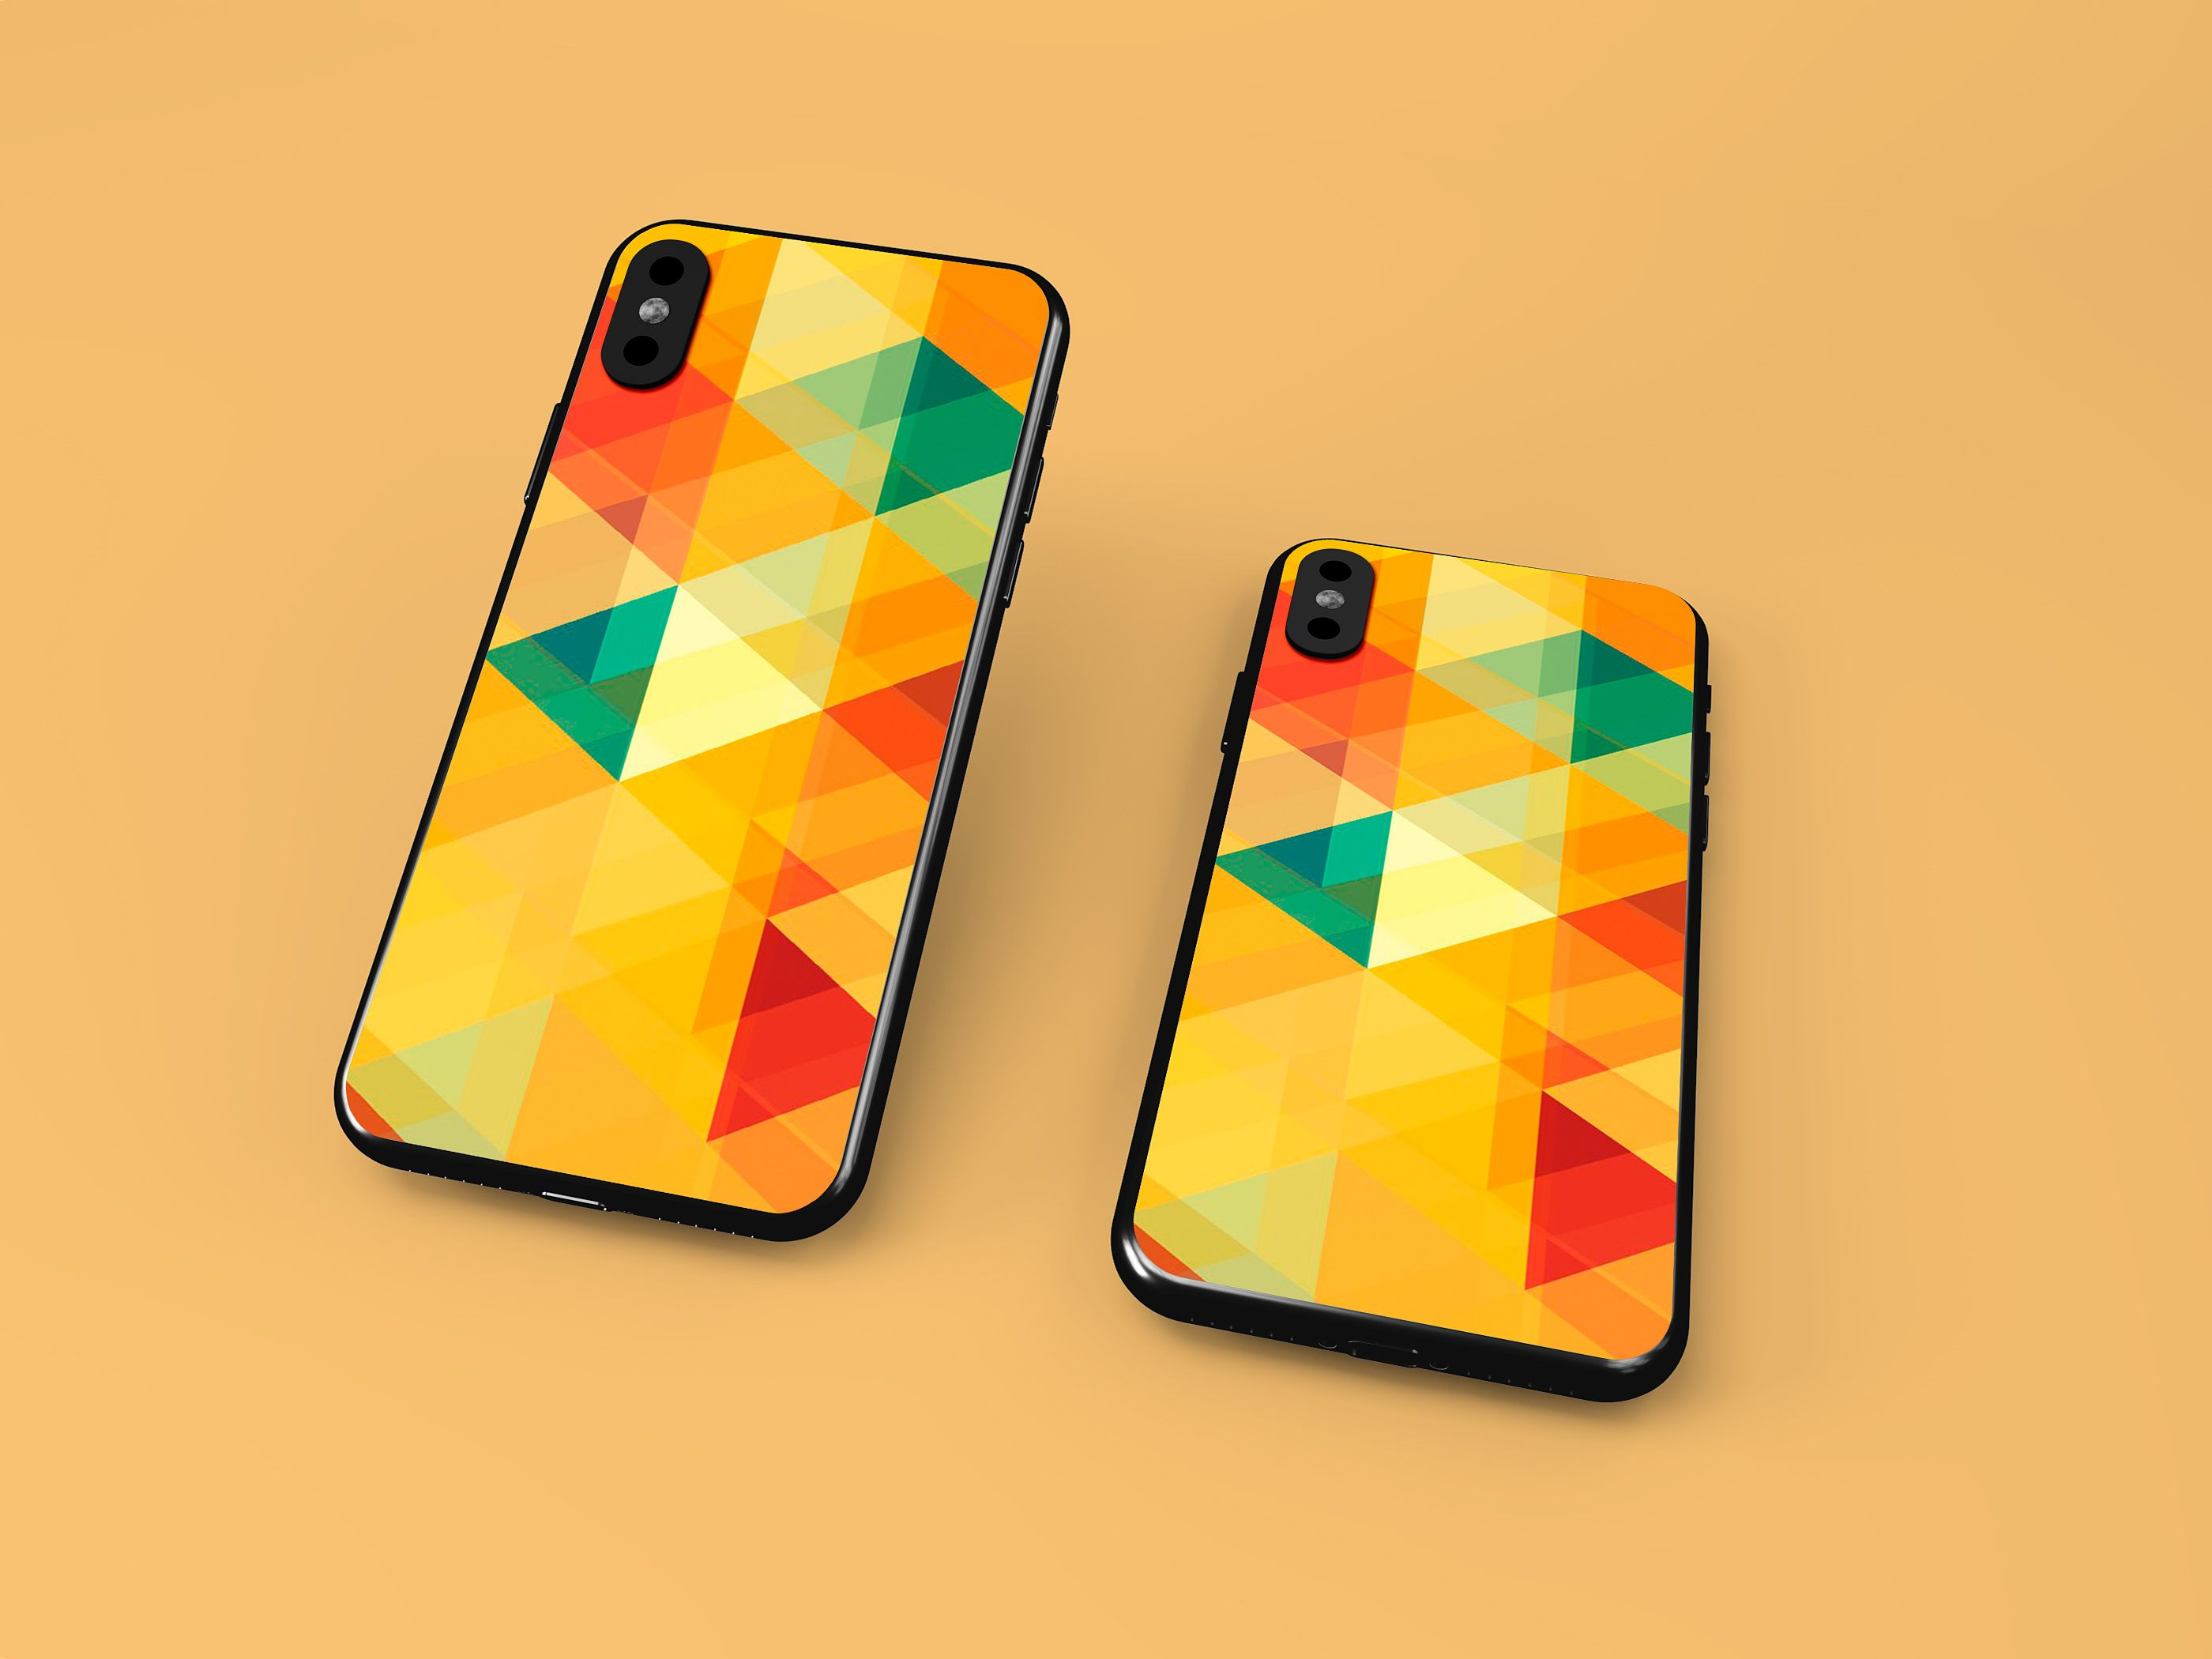 Download Iphone Case Mockup Free Psd Free Mockup Mockup Free Psd Free Mockup Design Mockup Free